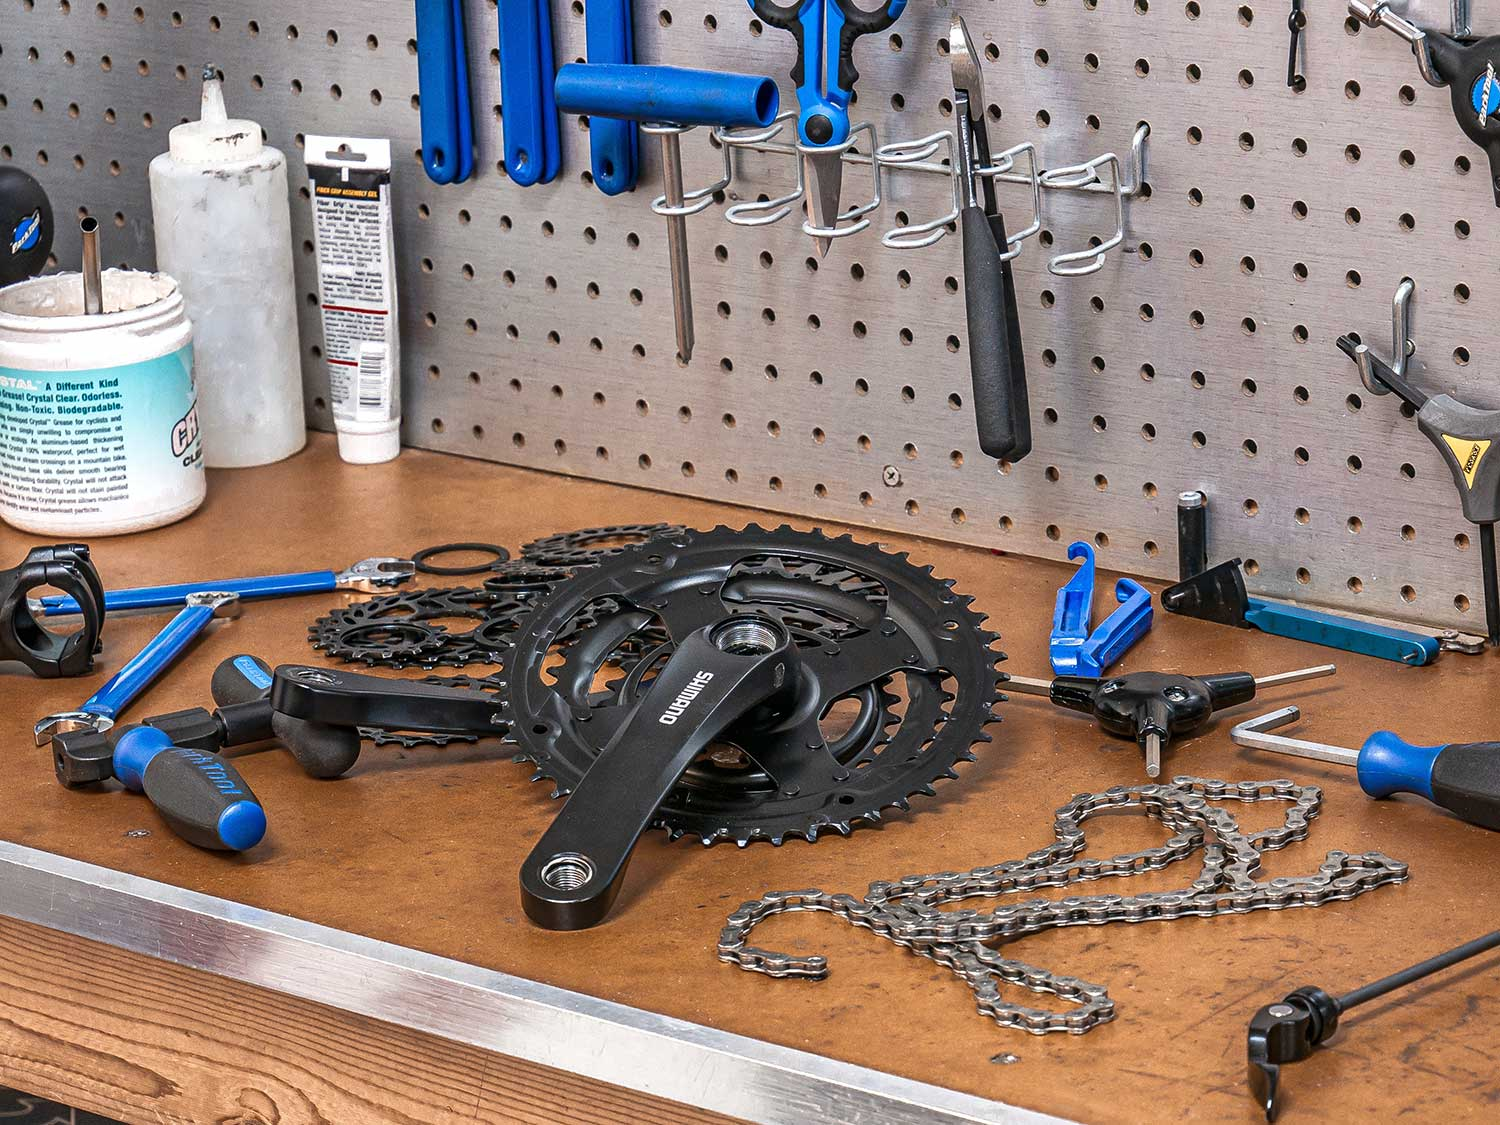 Pegboard storing tools.